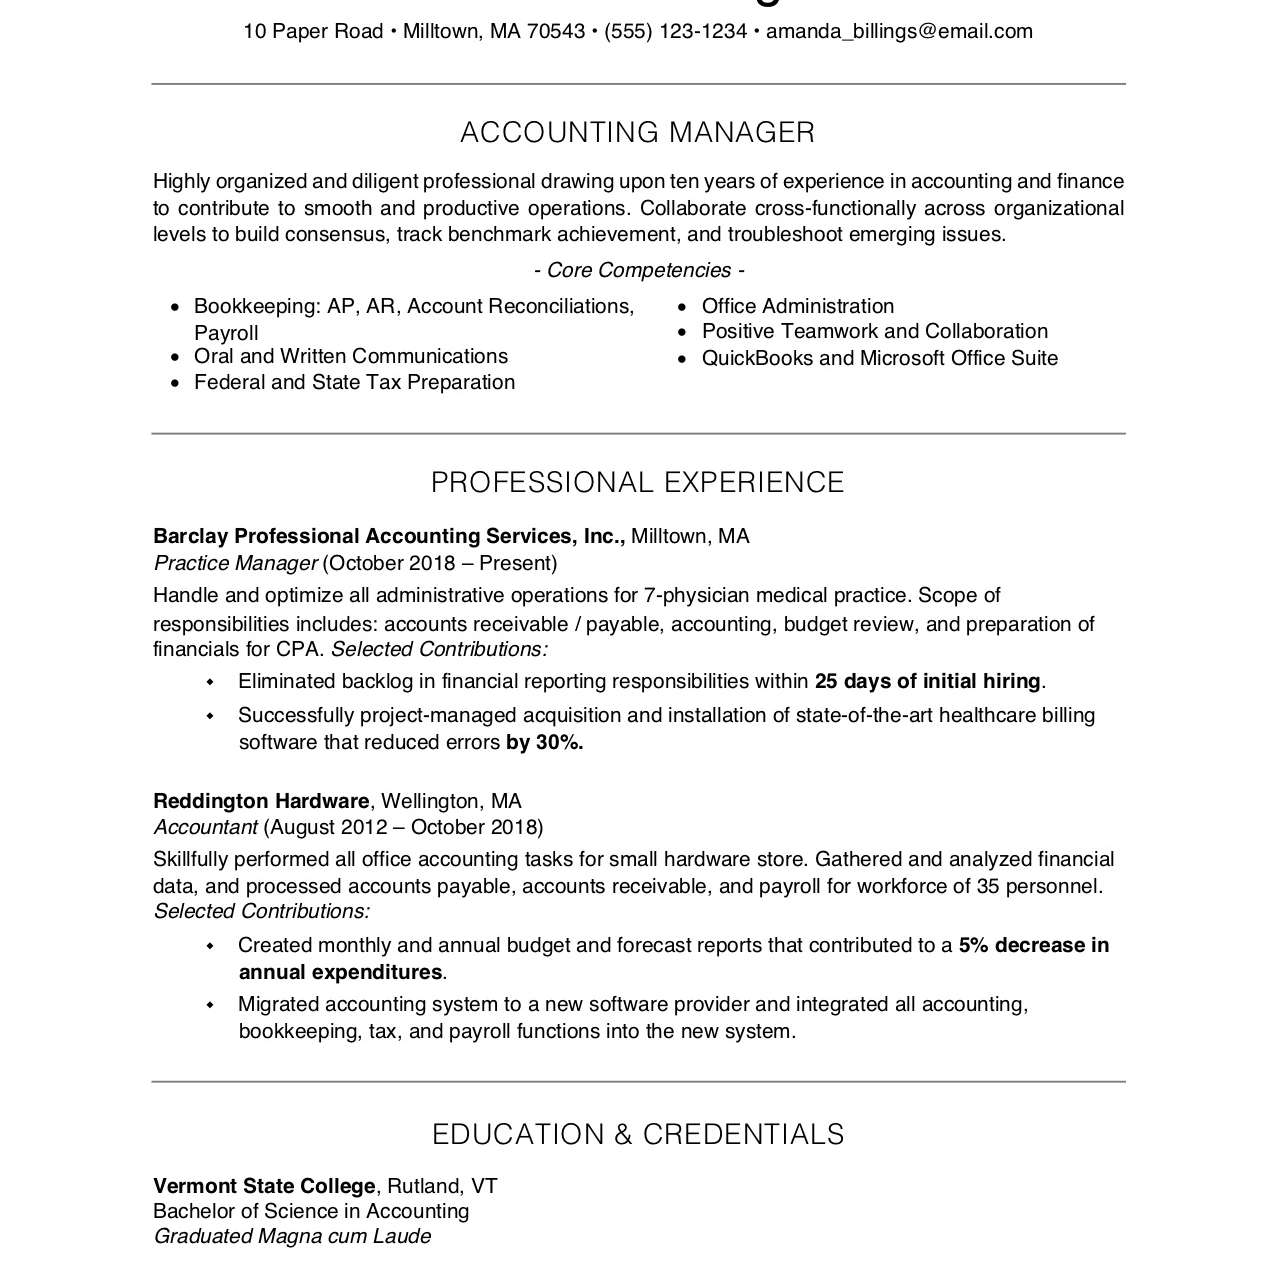 free professional resume examples and writing tips best templates for experienced Resume Best Resume Templates For Experienced Professionals